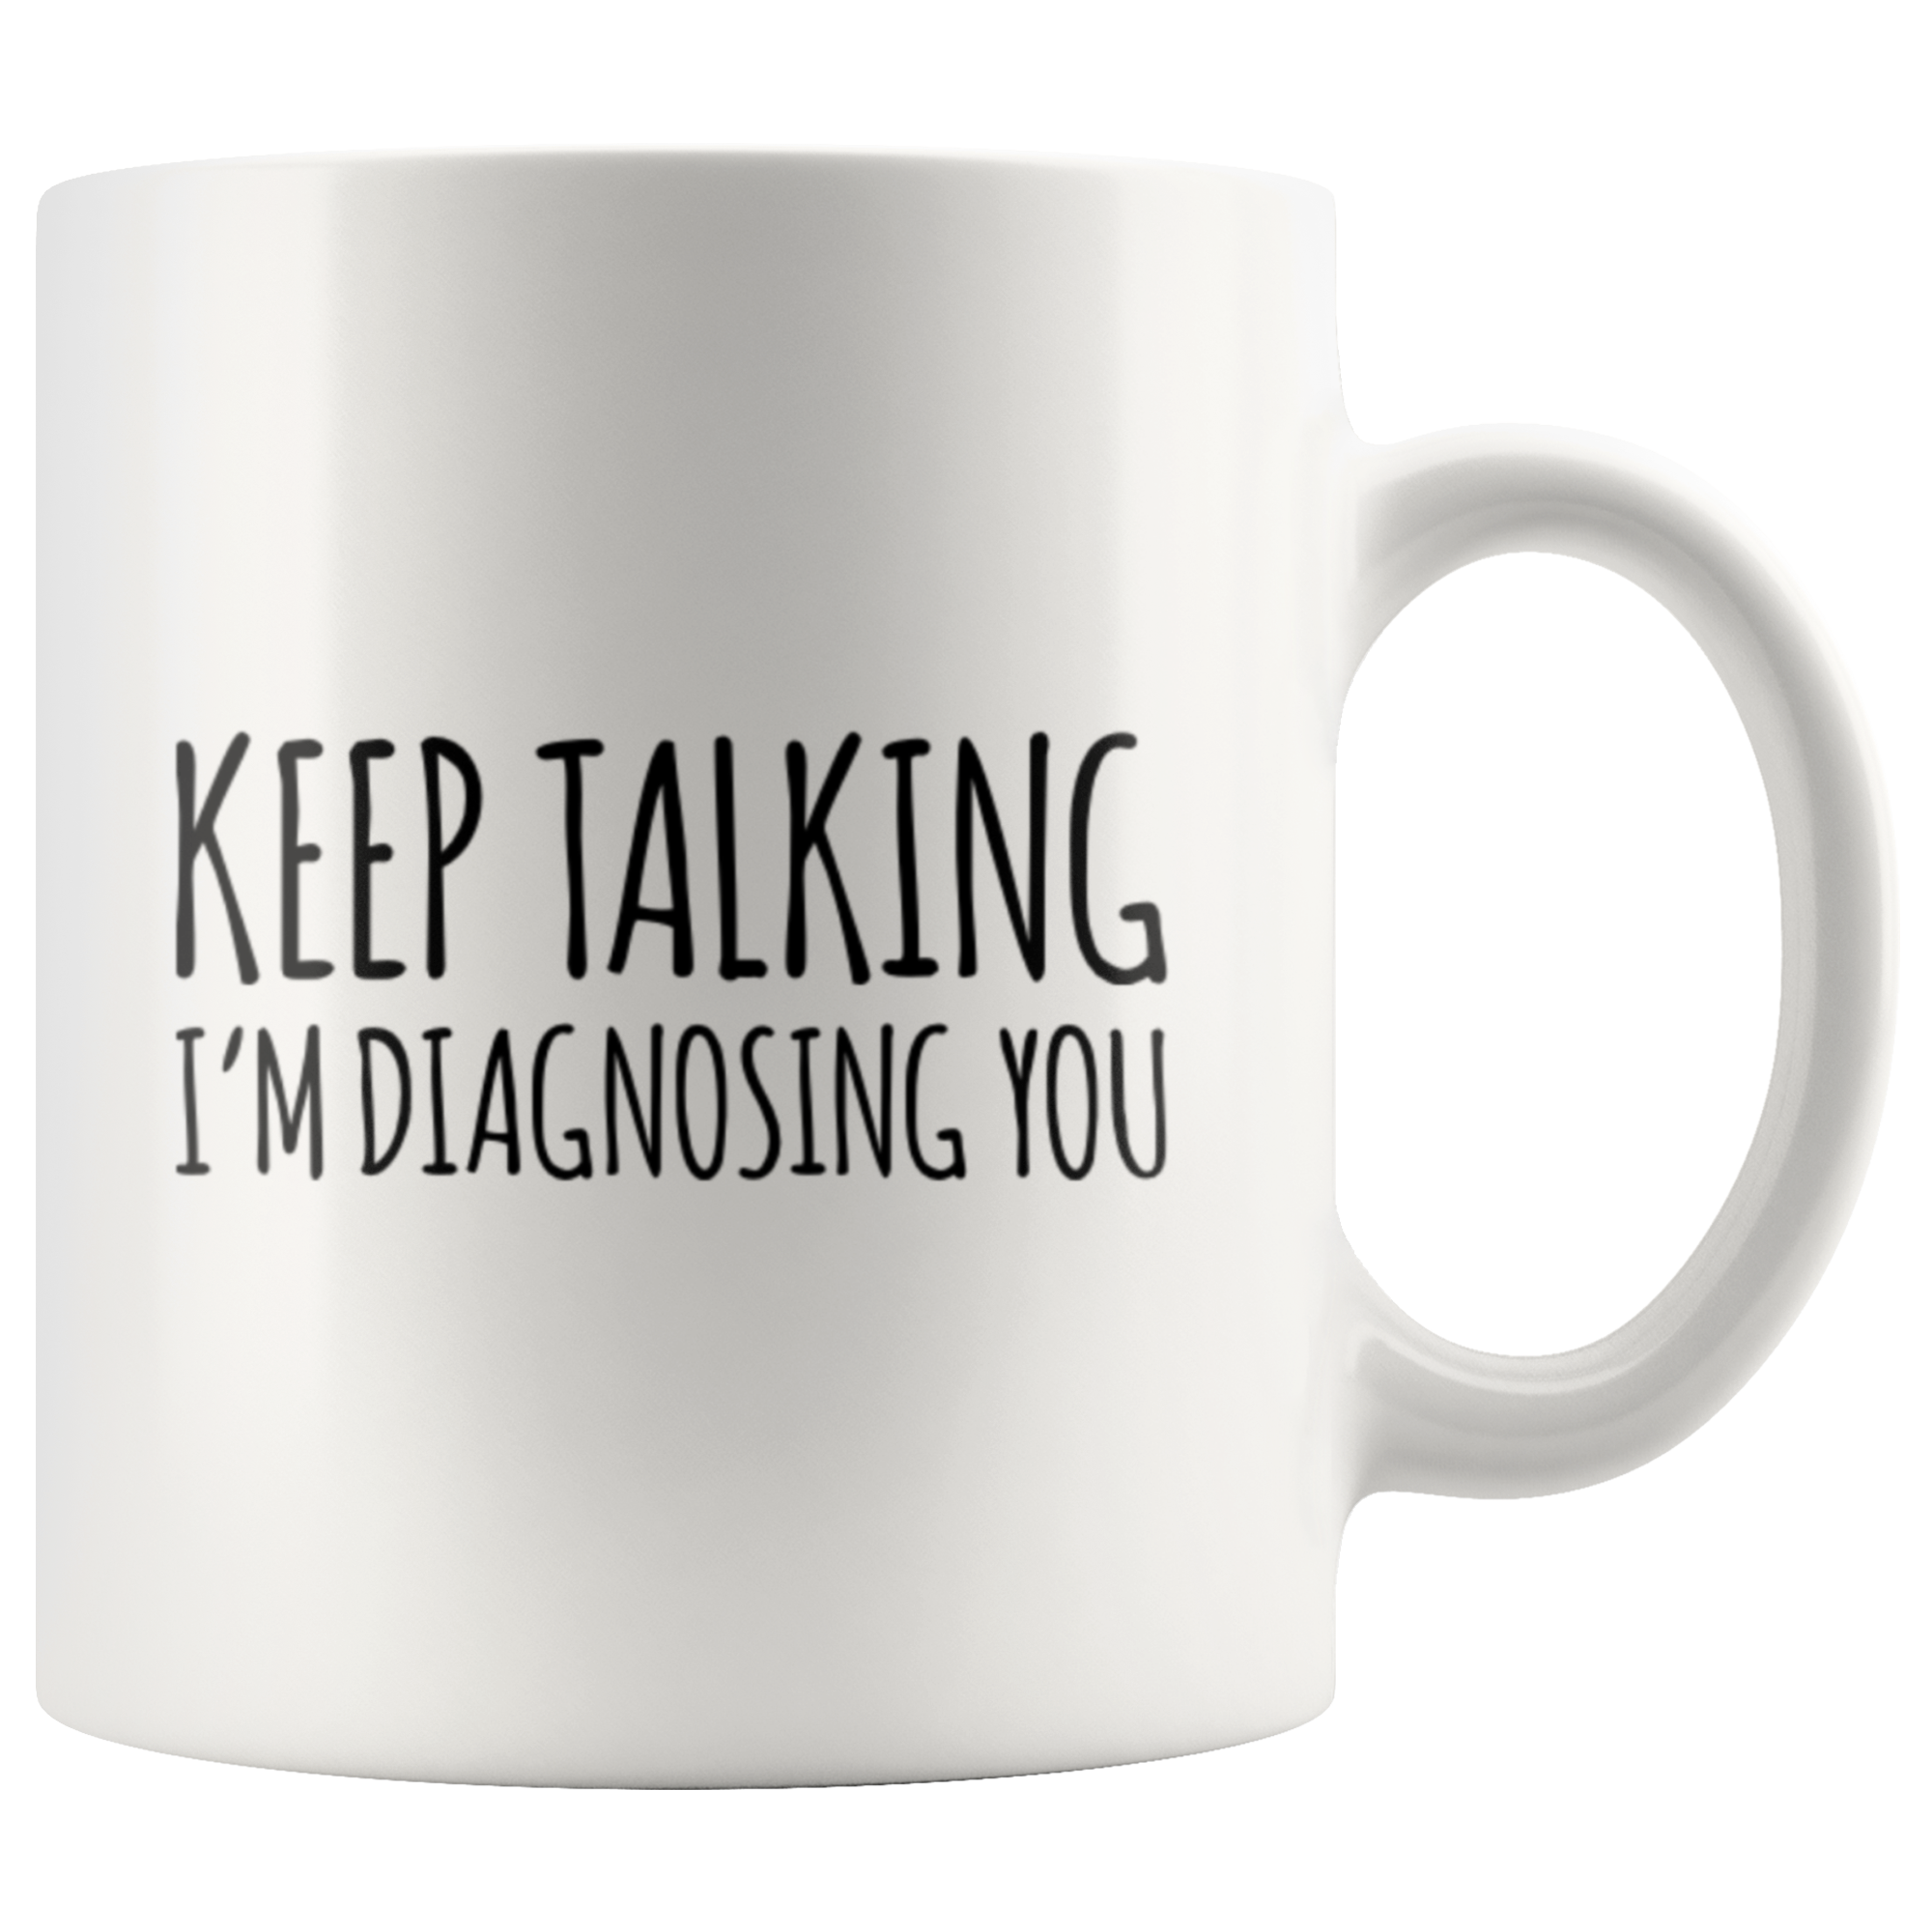 Psychology Gift - Keep Talking I'm Diagnosing You Appreciation Coffee Mug 11 oz